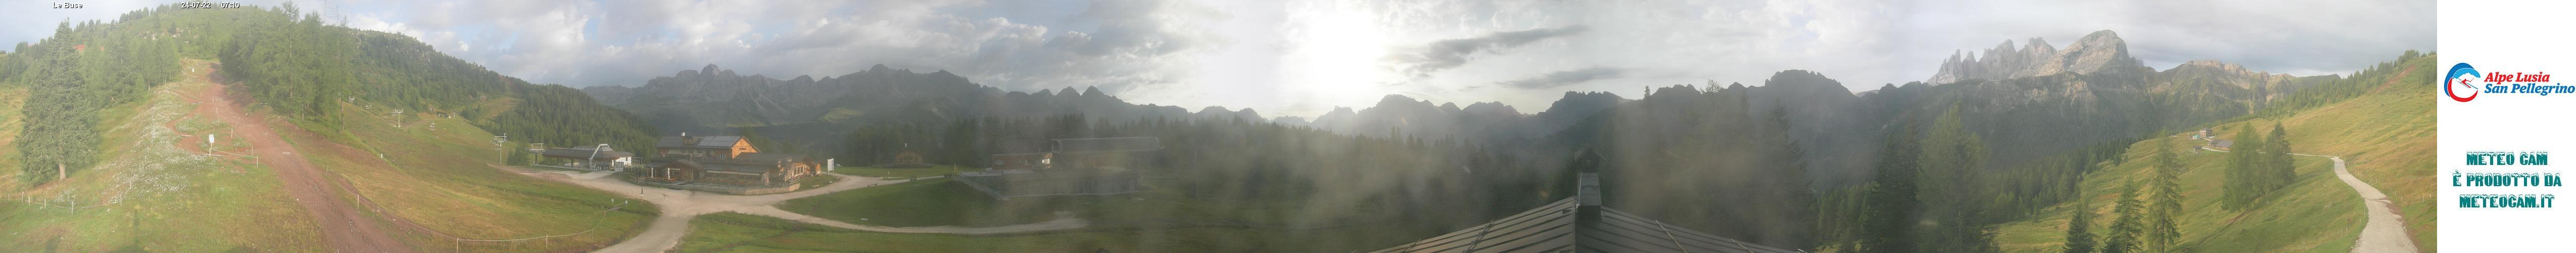 Webcam panorama realtime 360° Passo San Pellegrino - Falcade - Le Buse - Altitude: 1,883 metresArea: Le BusePanoramic viewpoint: 360°real time webcam. Panoramic view over the slopes and lifts of the Falcade ski area. View from the mountain station of the cabin lift